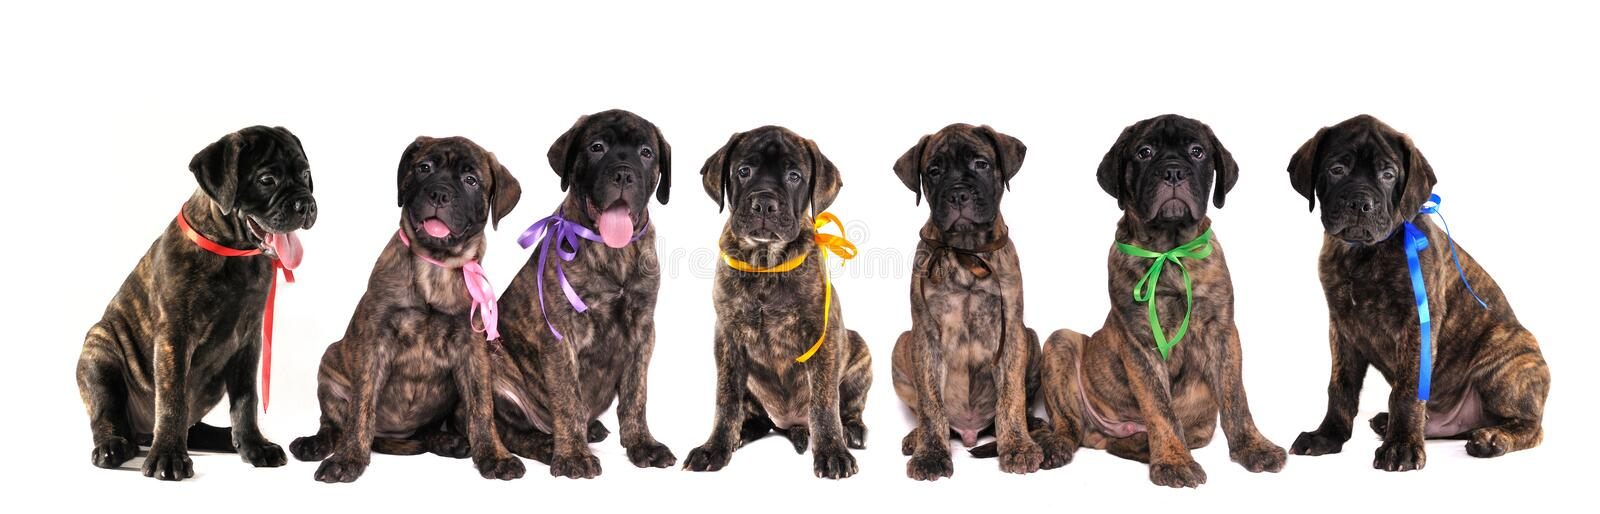 Sept chiots de bullmastiff d'isolement sur le blanc photos stock